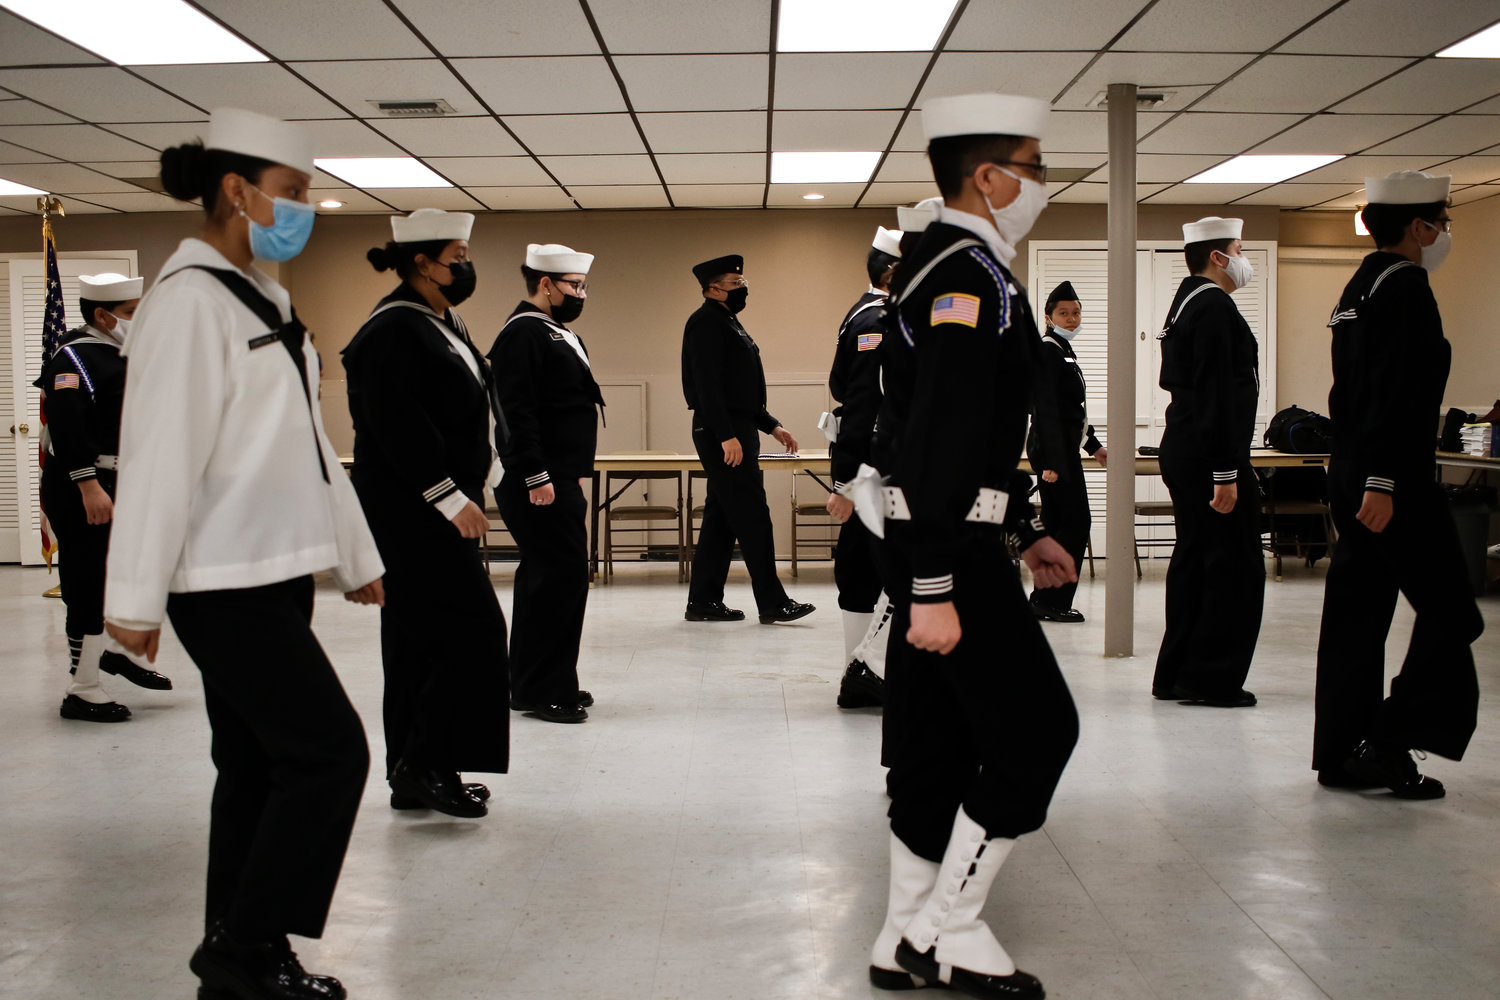 Members of the New York Naval Cadet Corps took drill instructions at the Valley Stream American Legion Hall on Saturday from Donny Ponce, lieutenant commander and founder of the Queens-based program, which is intended to teach children some basic discipline skills.